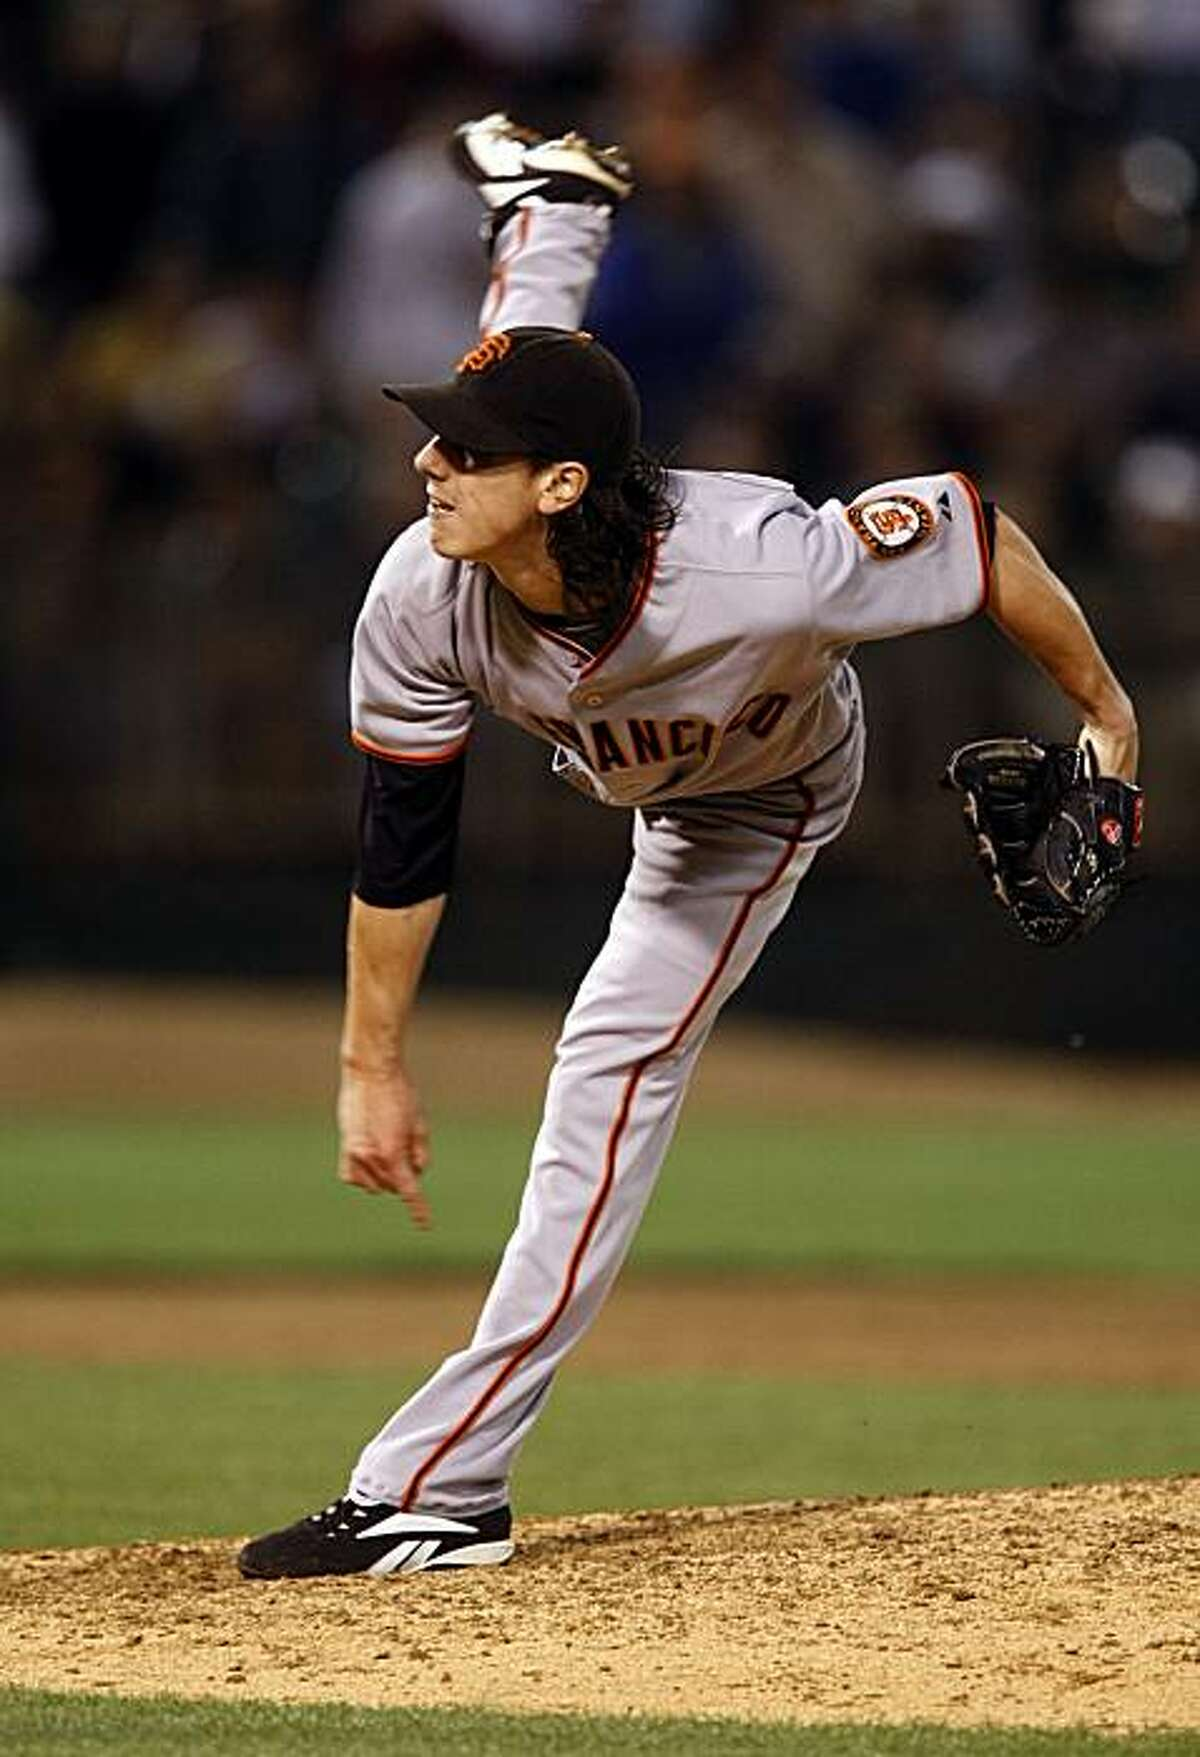 Giants Tim Lincecum pitched a complete game for the win and a 4-1 final score. The San Francisco Giants take on the Oakland Athletics in the Battle of the Bay series on Tuesday June 23, 2009, in Oakland , Calif.